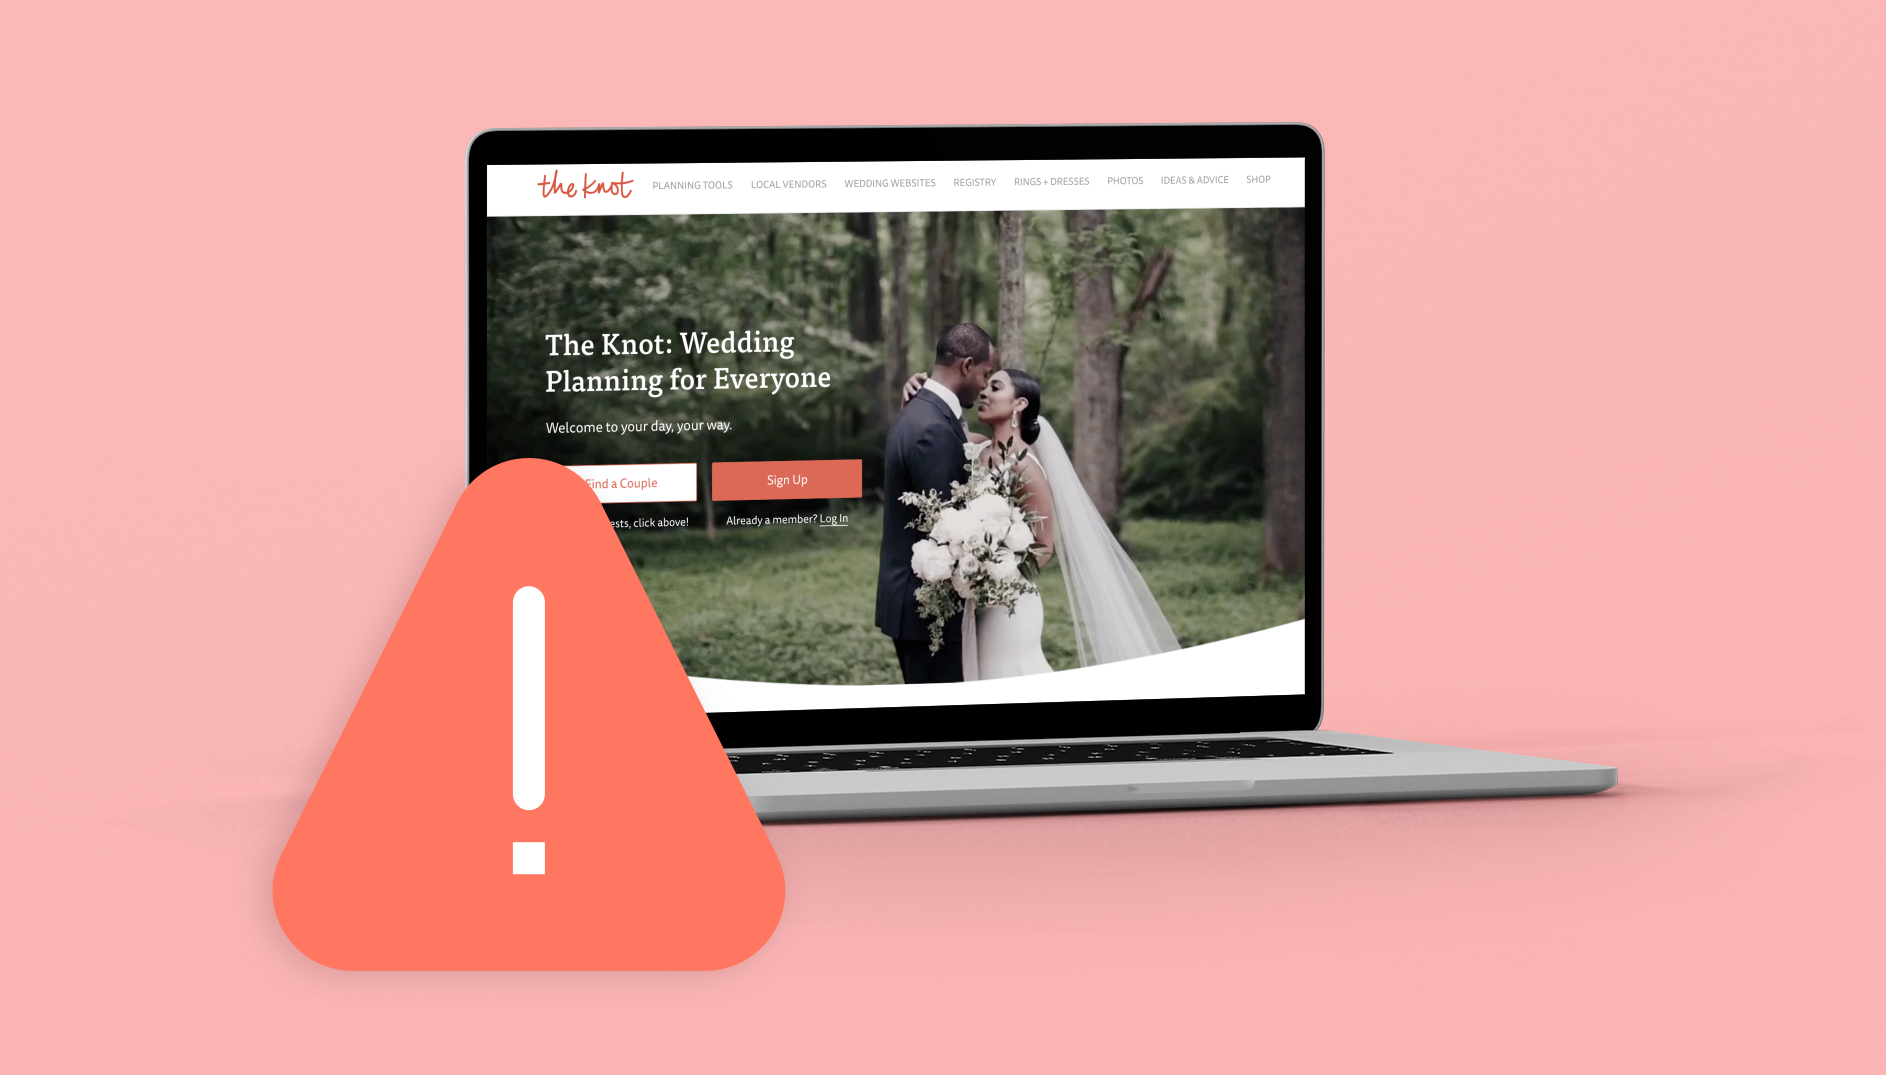 The Knot Wedding Website Beware